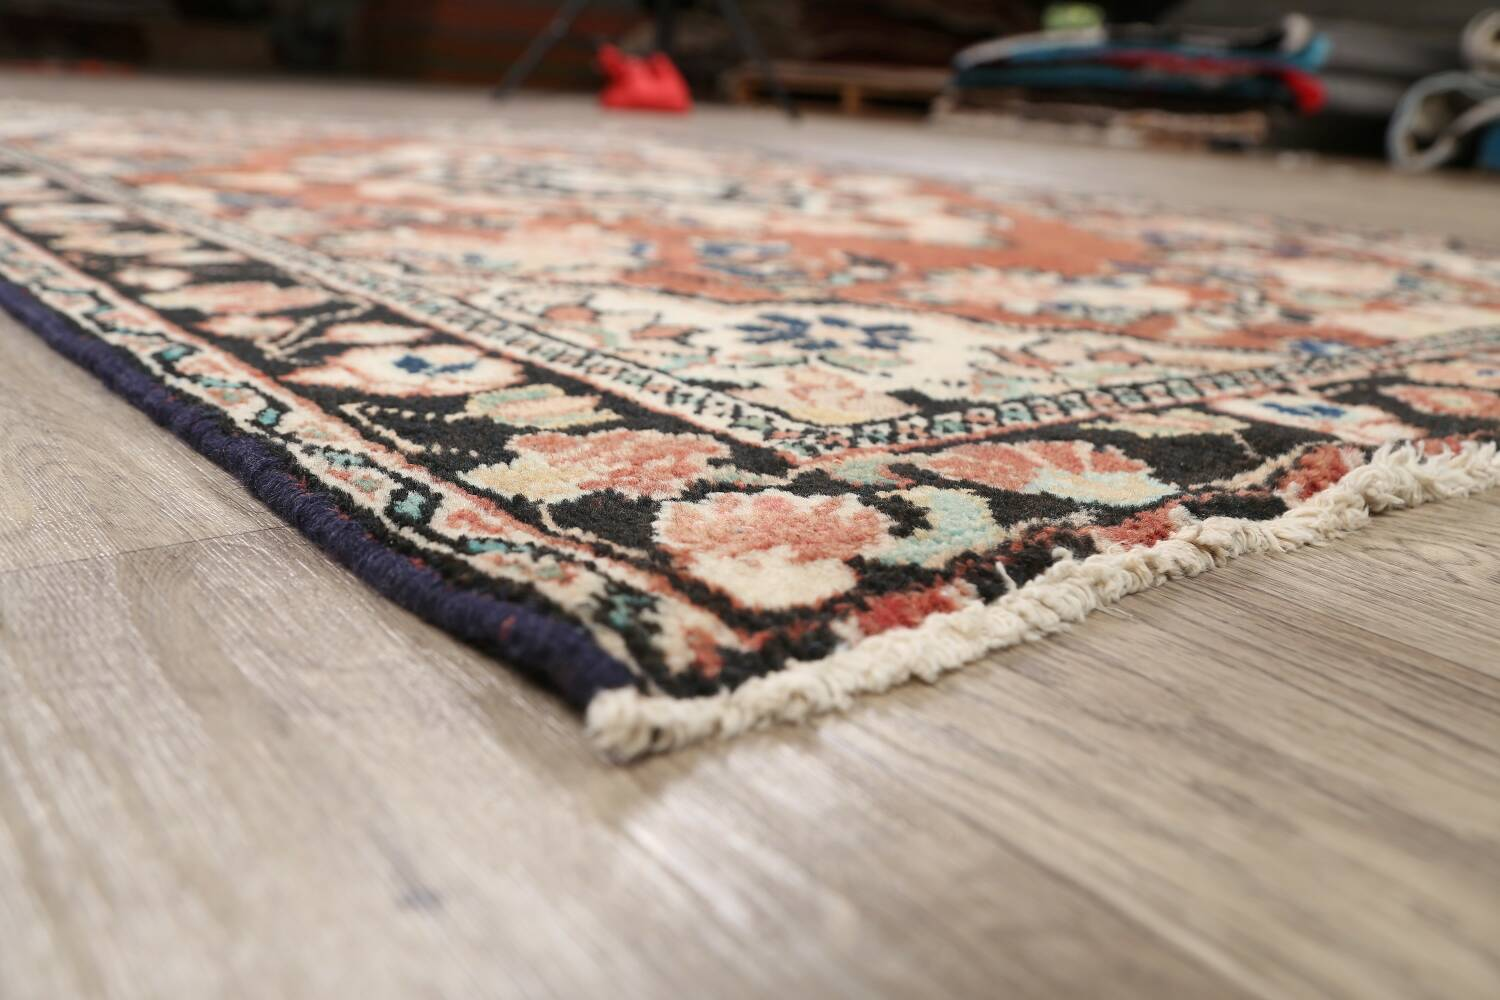 Antique Floral Mahal Persian Area Rug 4x6 image 6